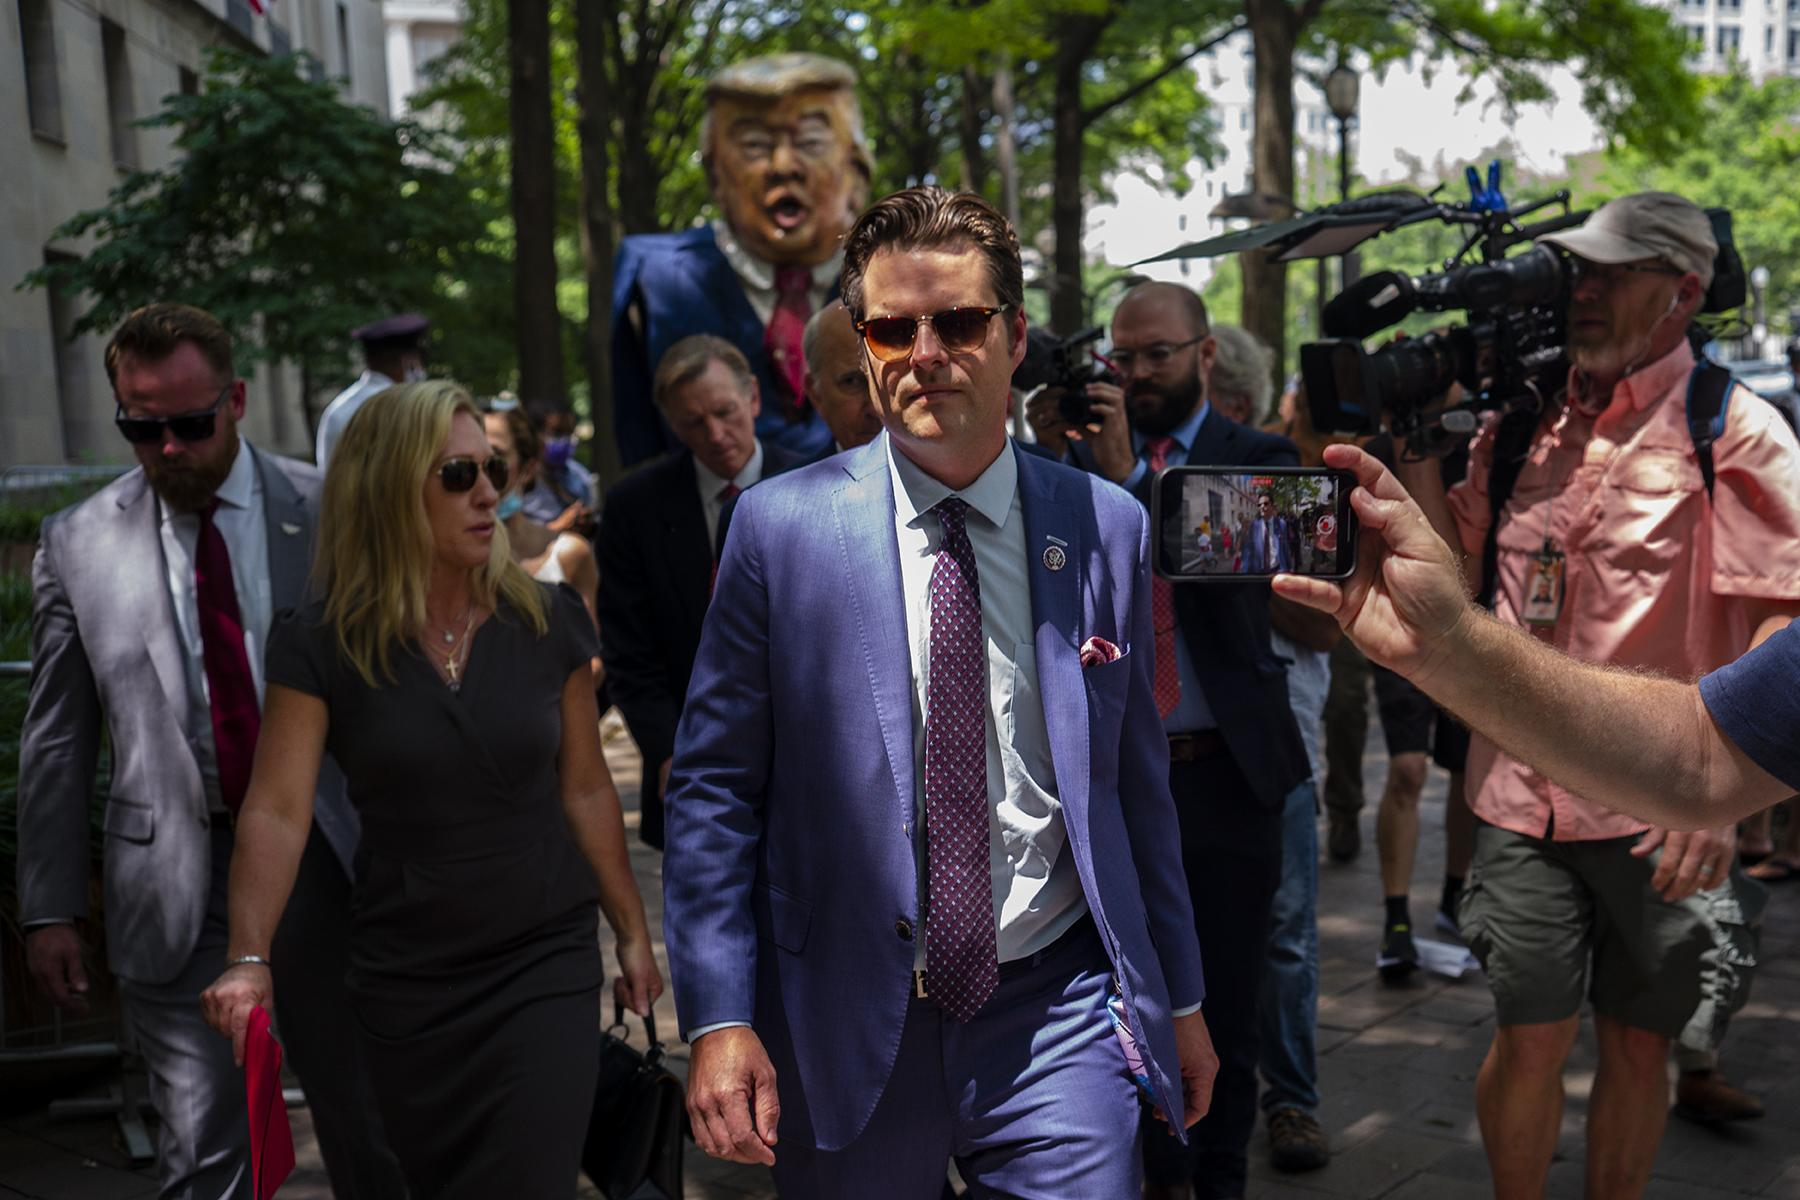 Matt Gaetz and Taylor Greene walk to an outside press conference in front of the Department of Justice on July 27th. There were protesting the non-response to questions of status of the investigation related to January 6th by AG Garland.